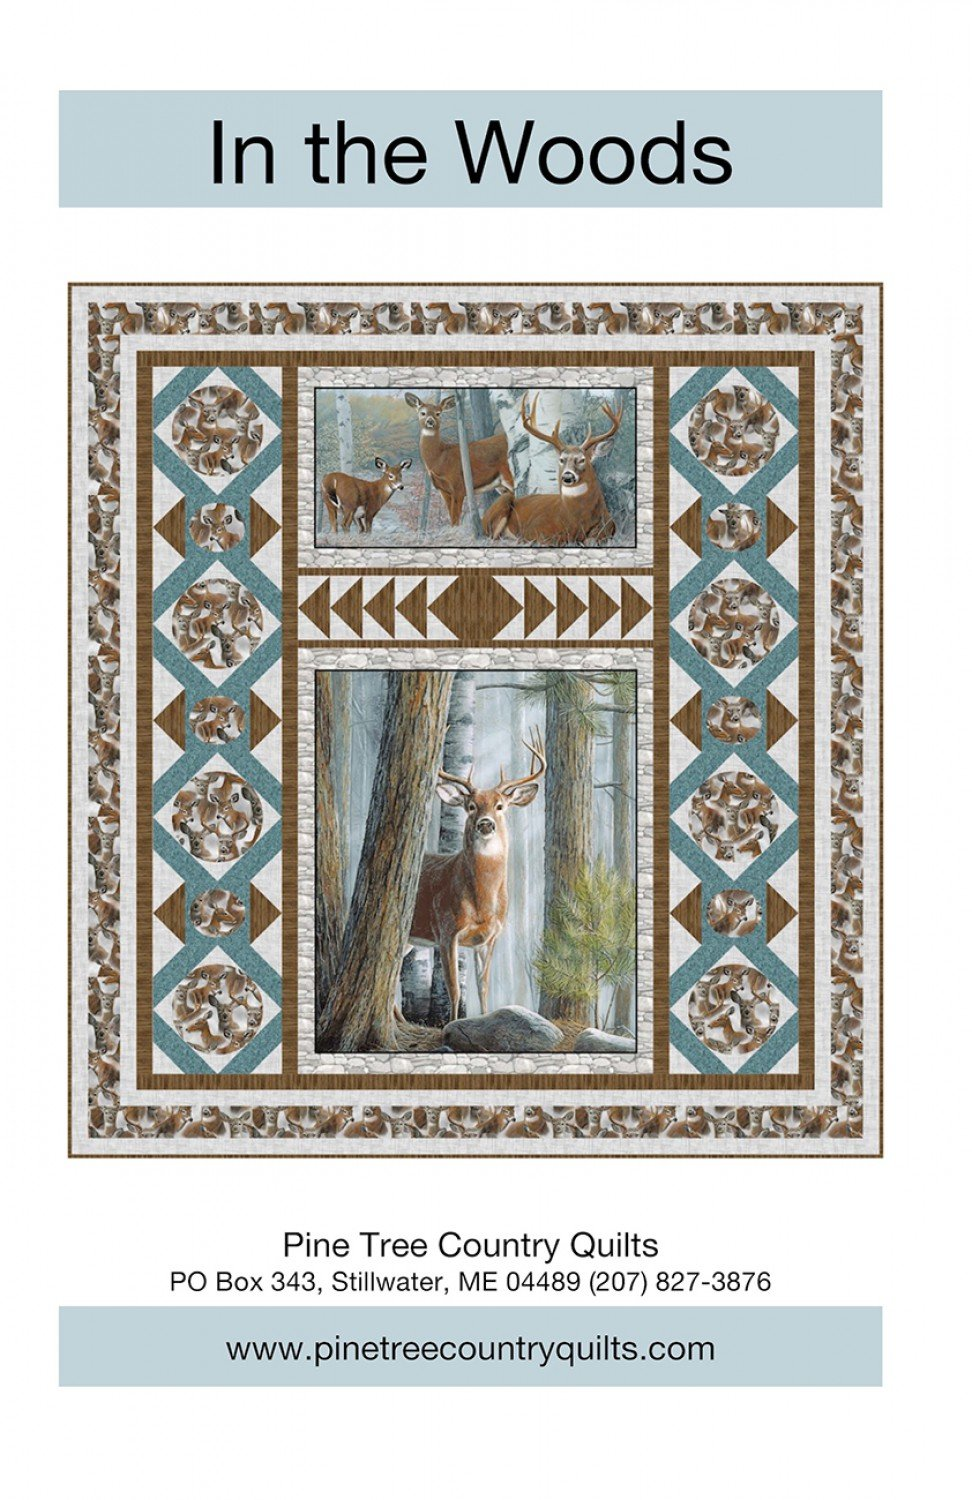 In the Woods quilt kit